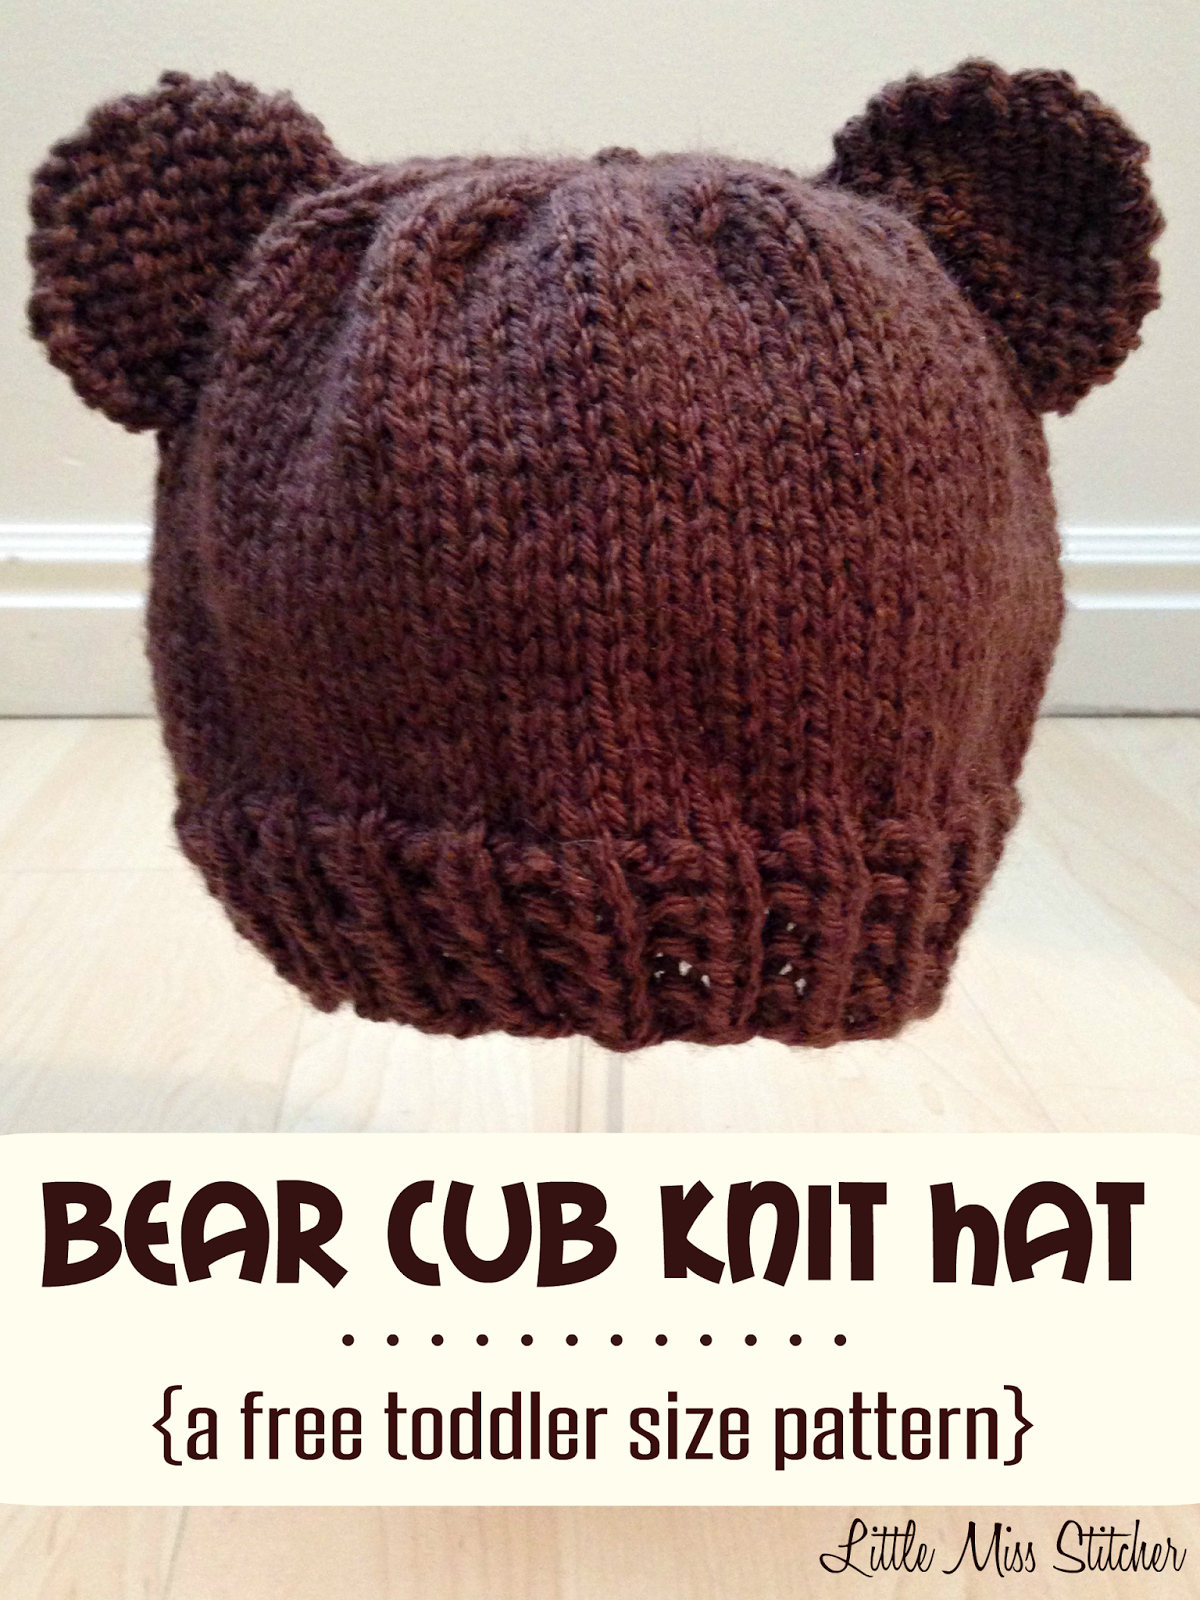 Knitting Kids Hat : Bear cub knit hat pattern for toddlers thinking i could